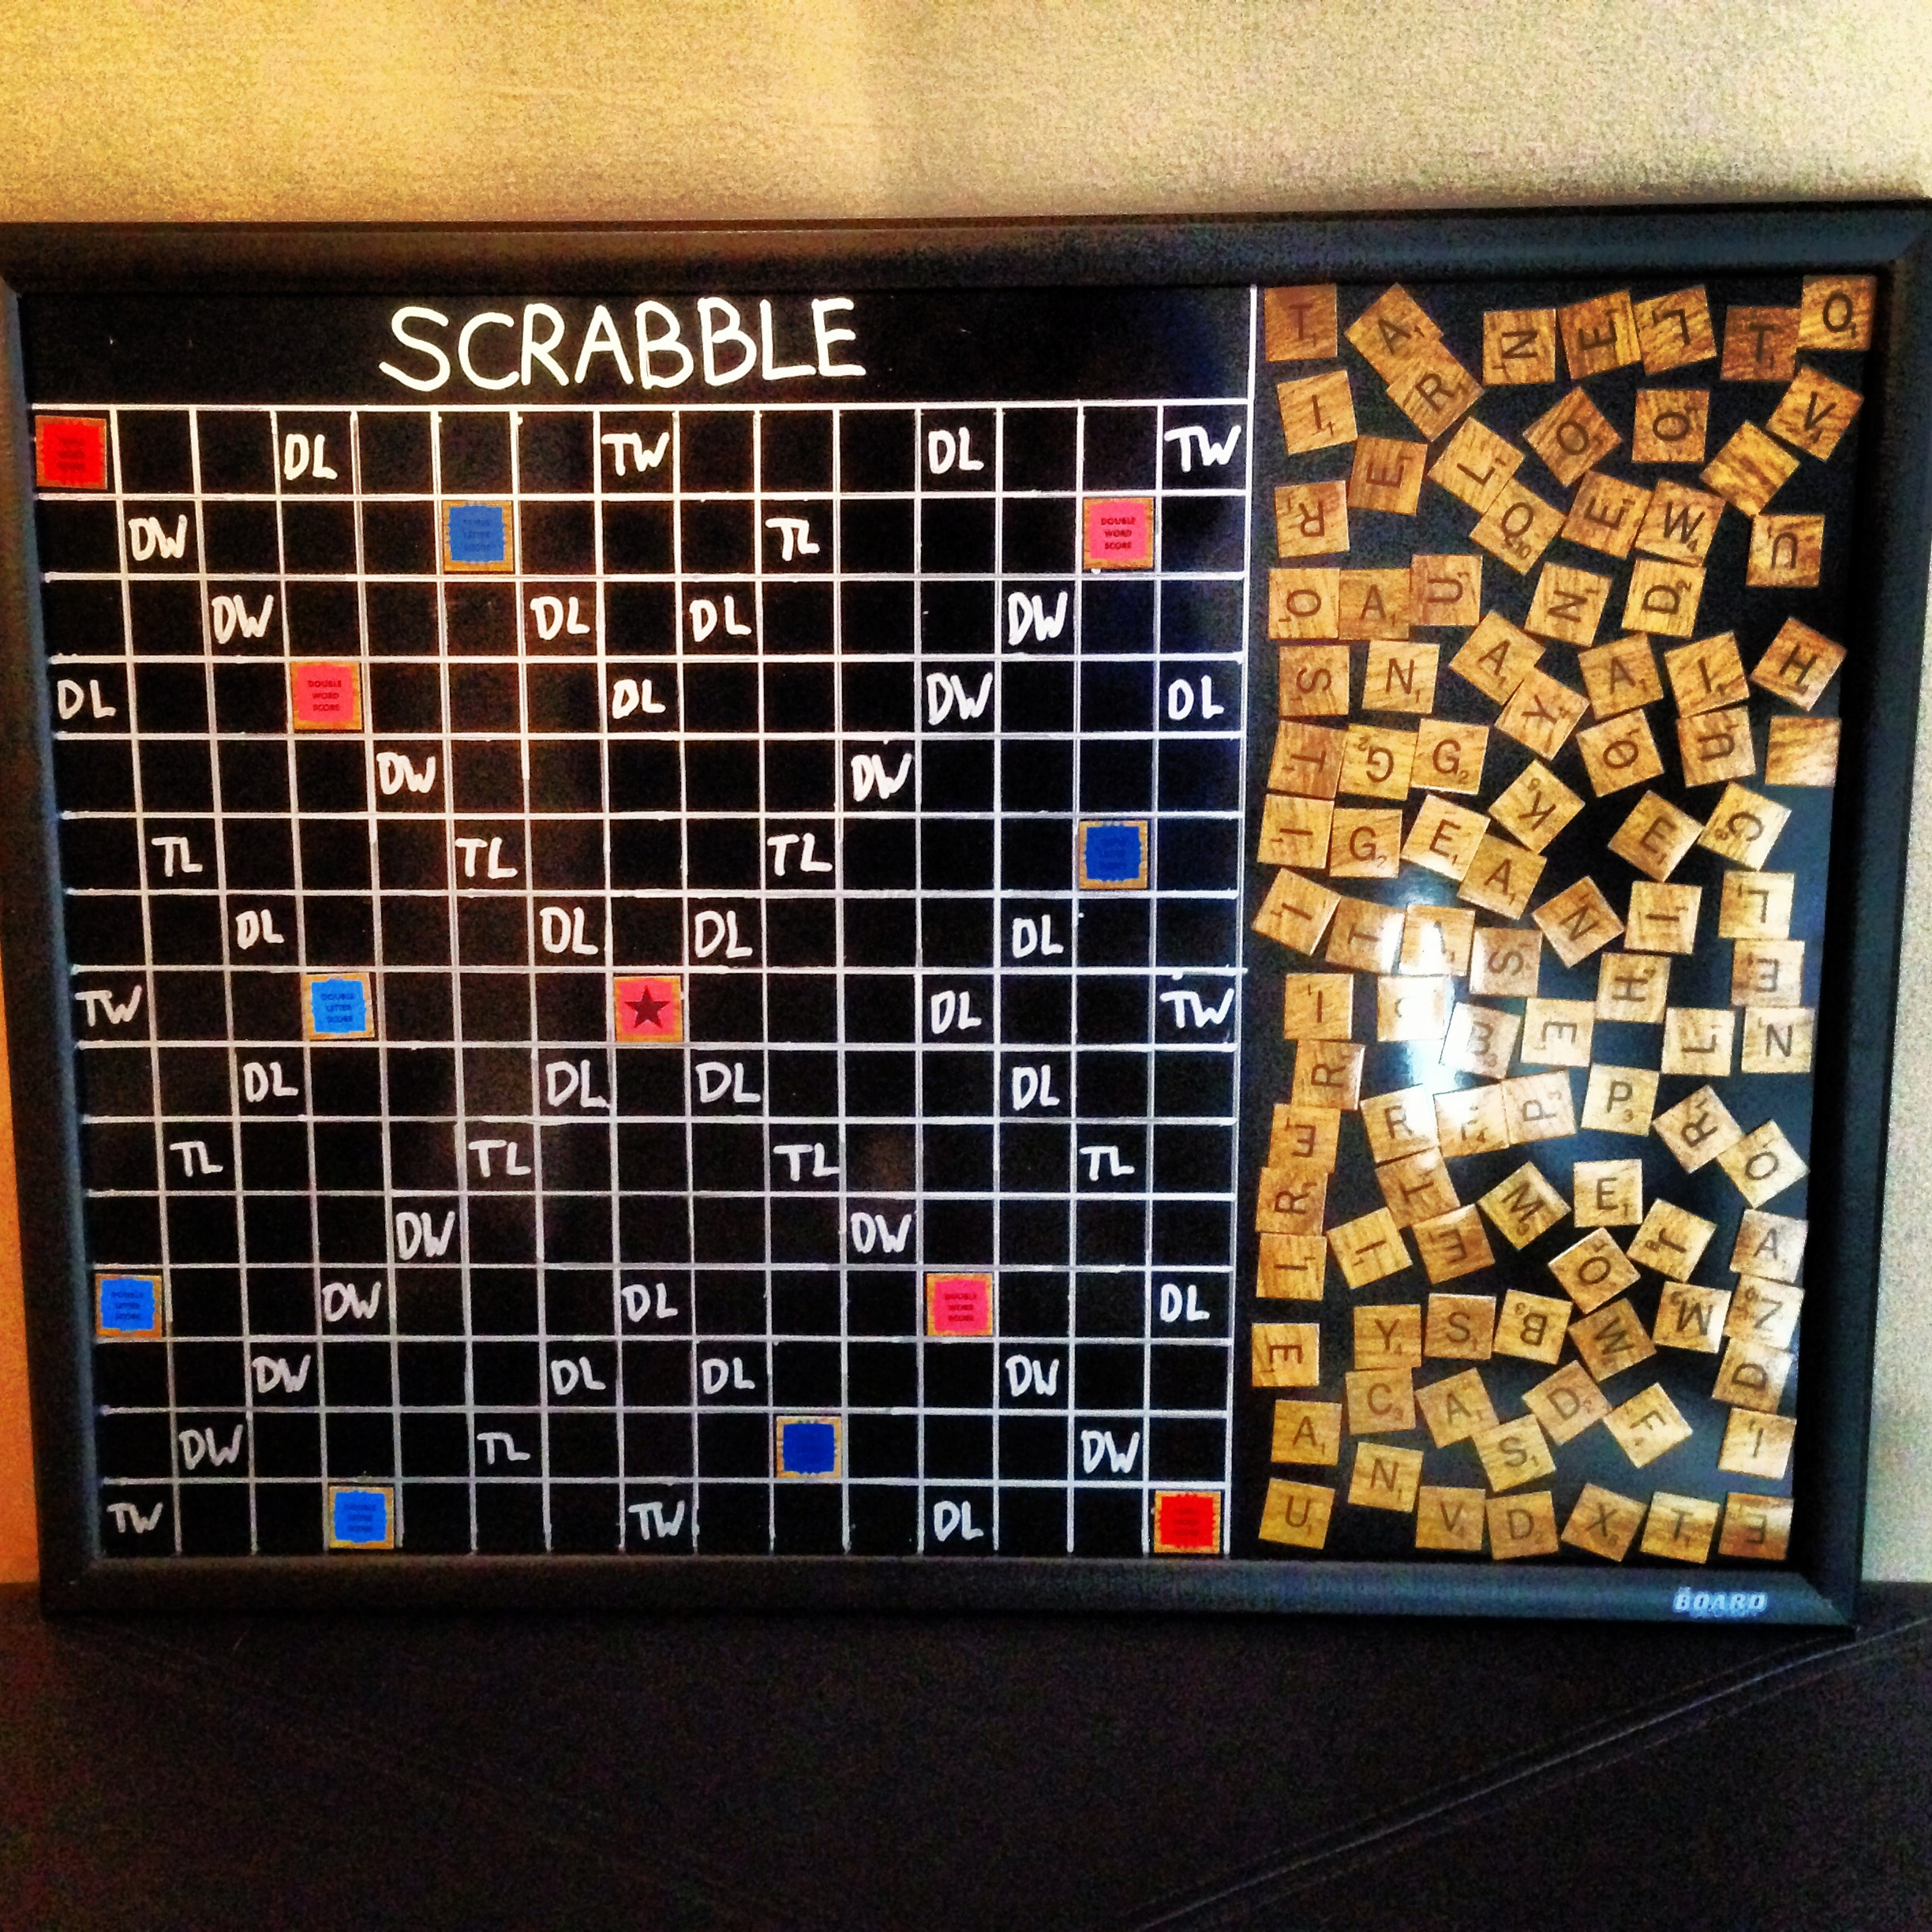 Scrabble clipart spelling rule Scrabble Scrabble Homemade for and